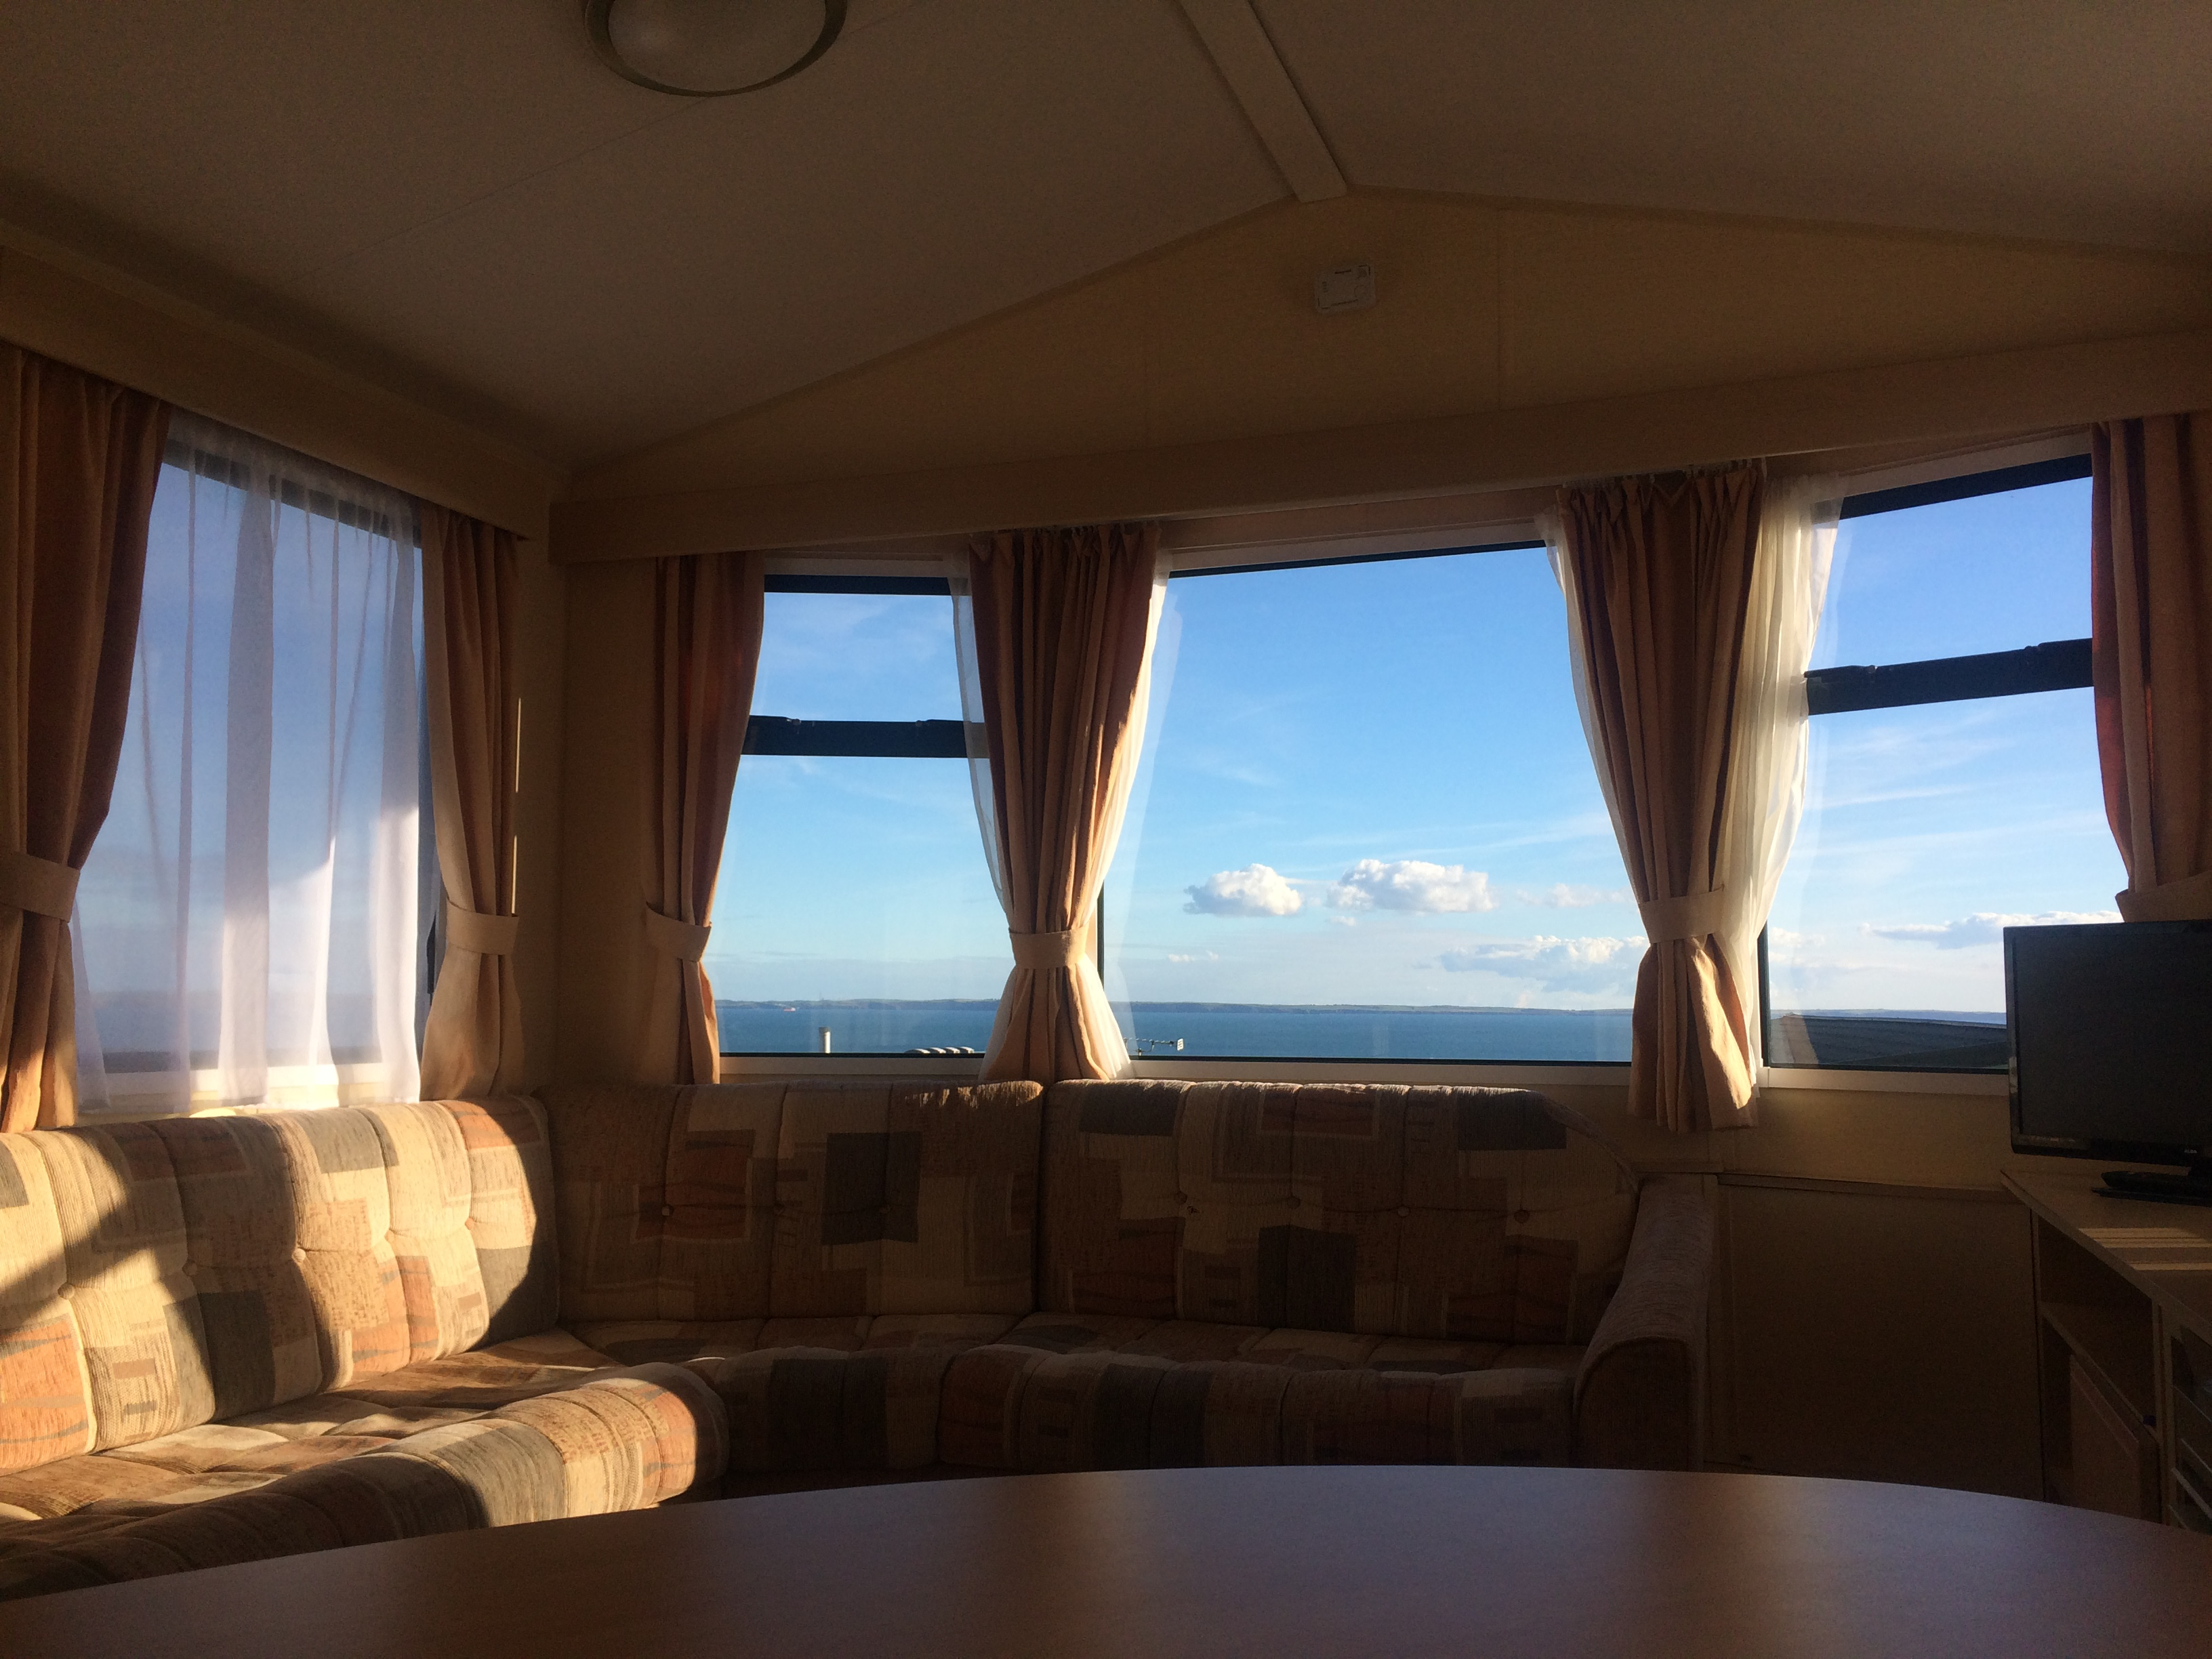 Sea view whilst sitting in living room